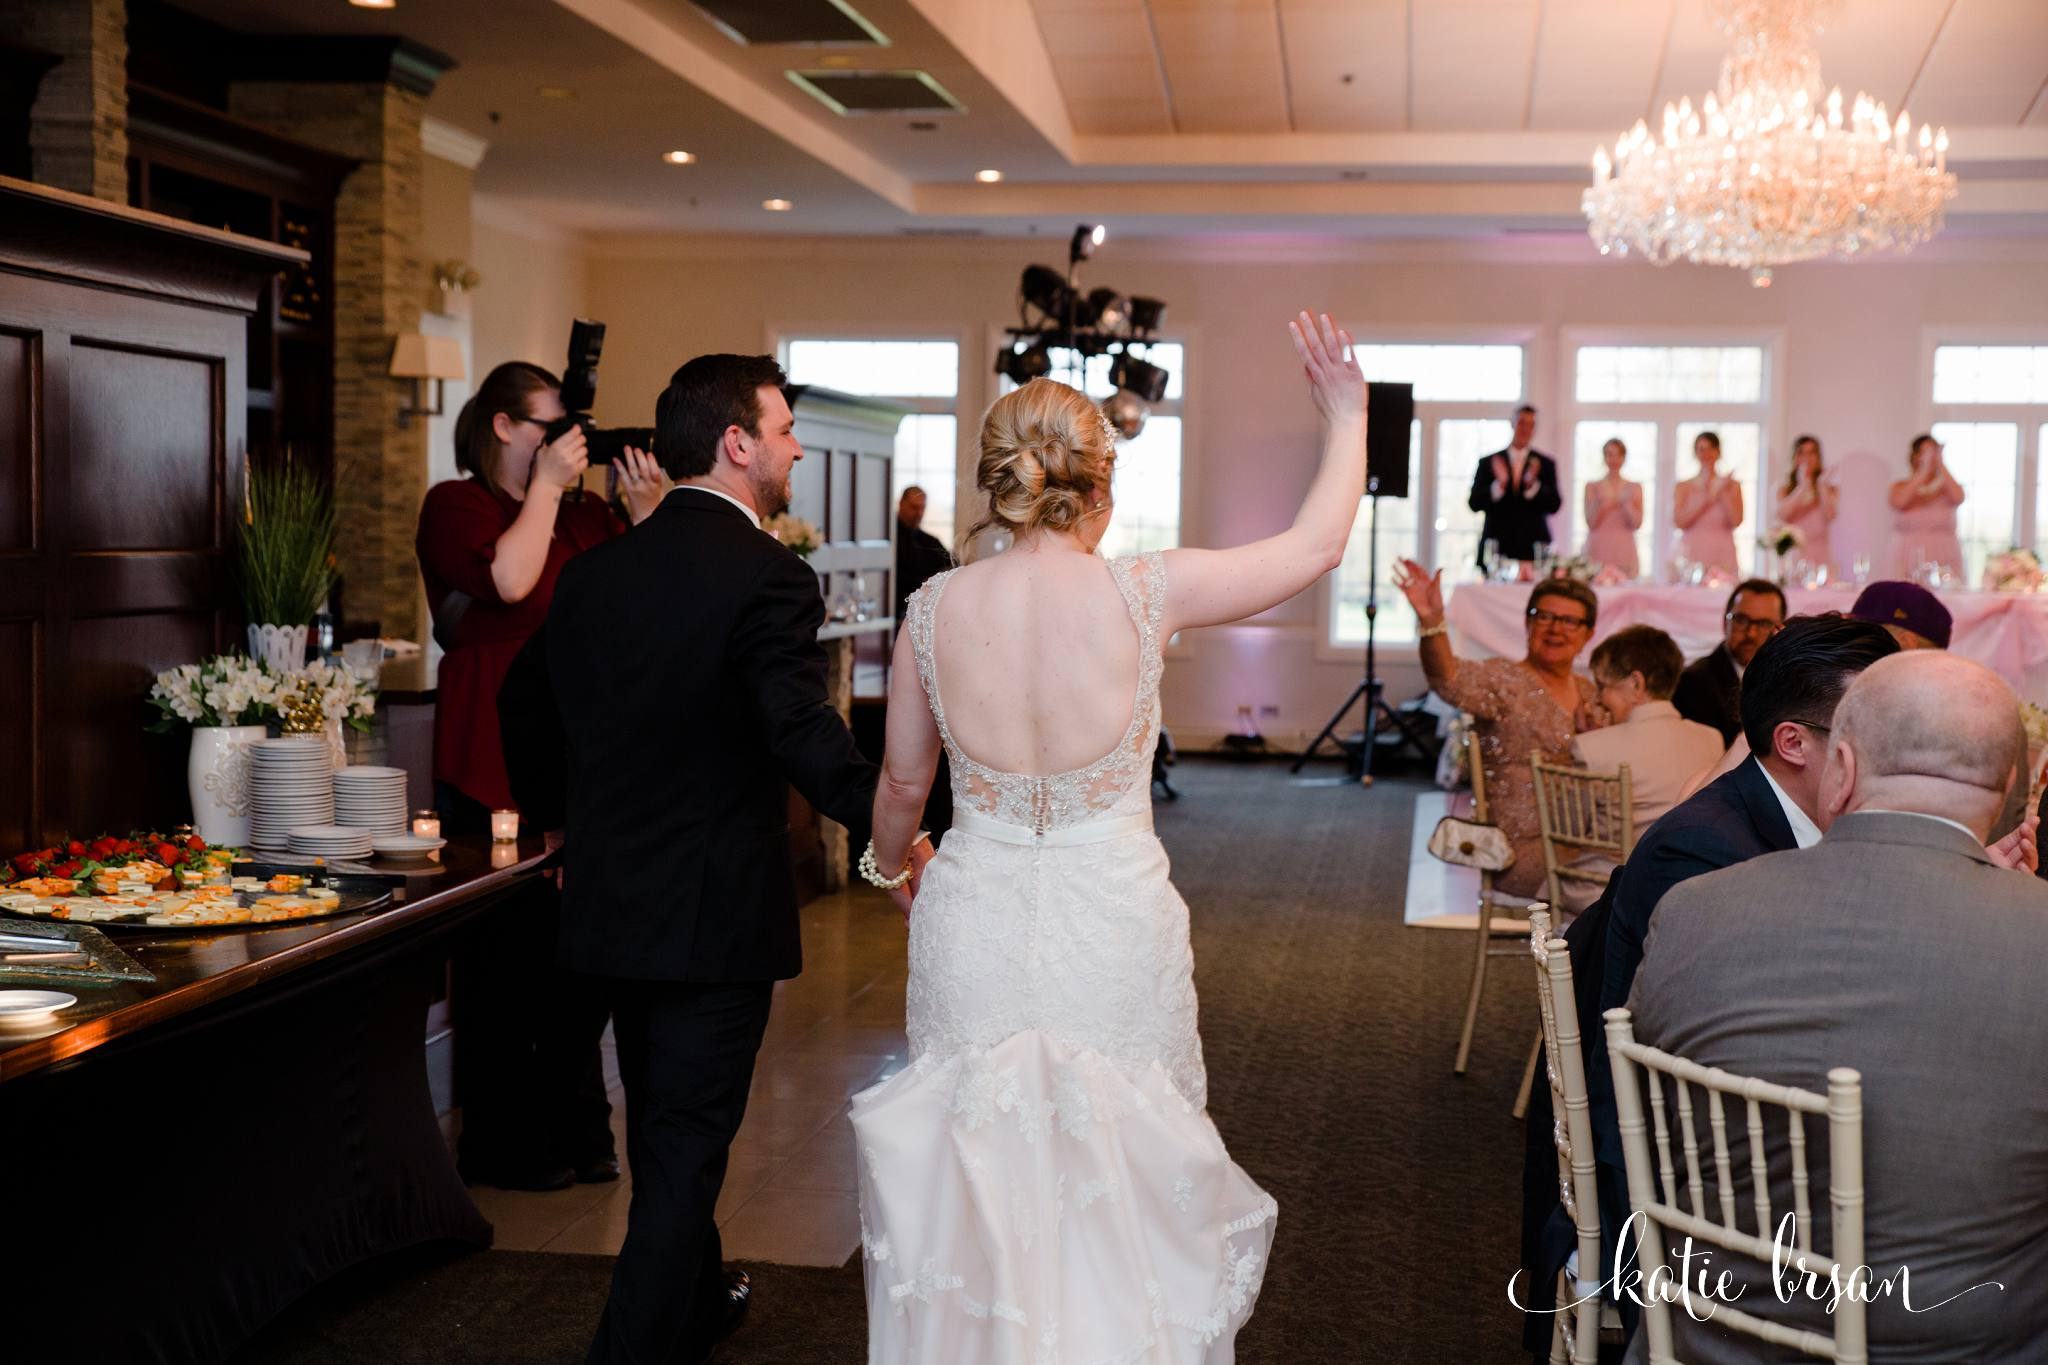 Mokena_Lemont_Wedding_Ruffled_Feathers_Wedding_1410.jpg